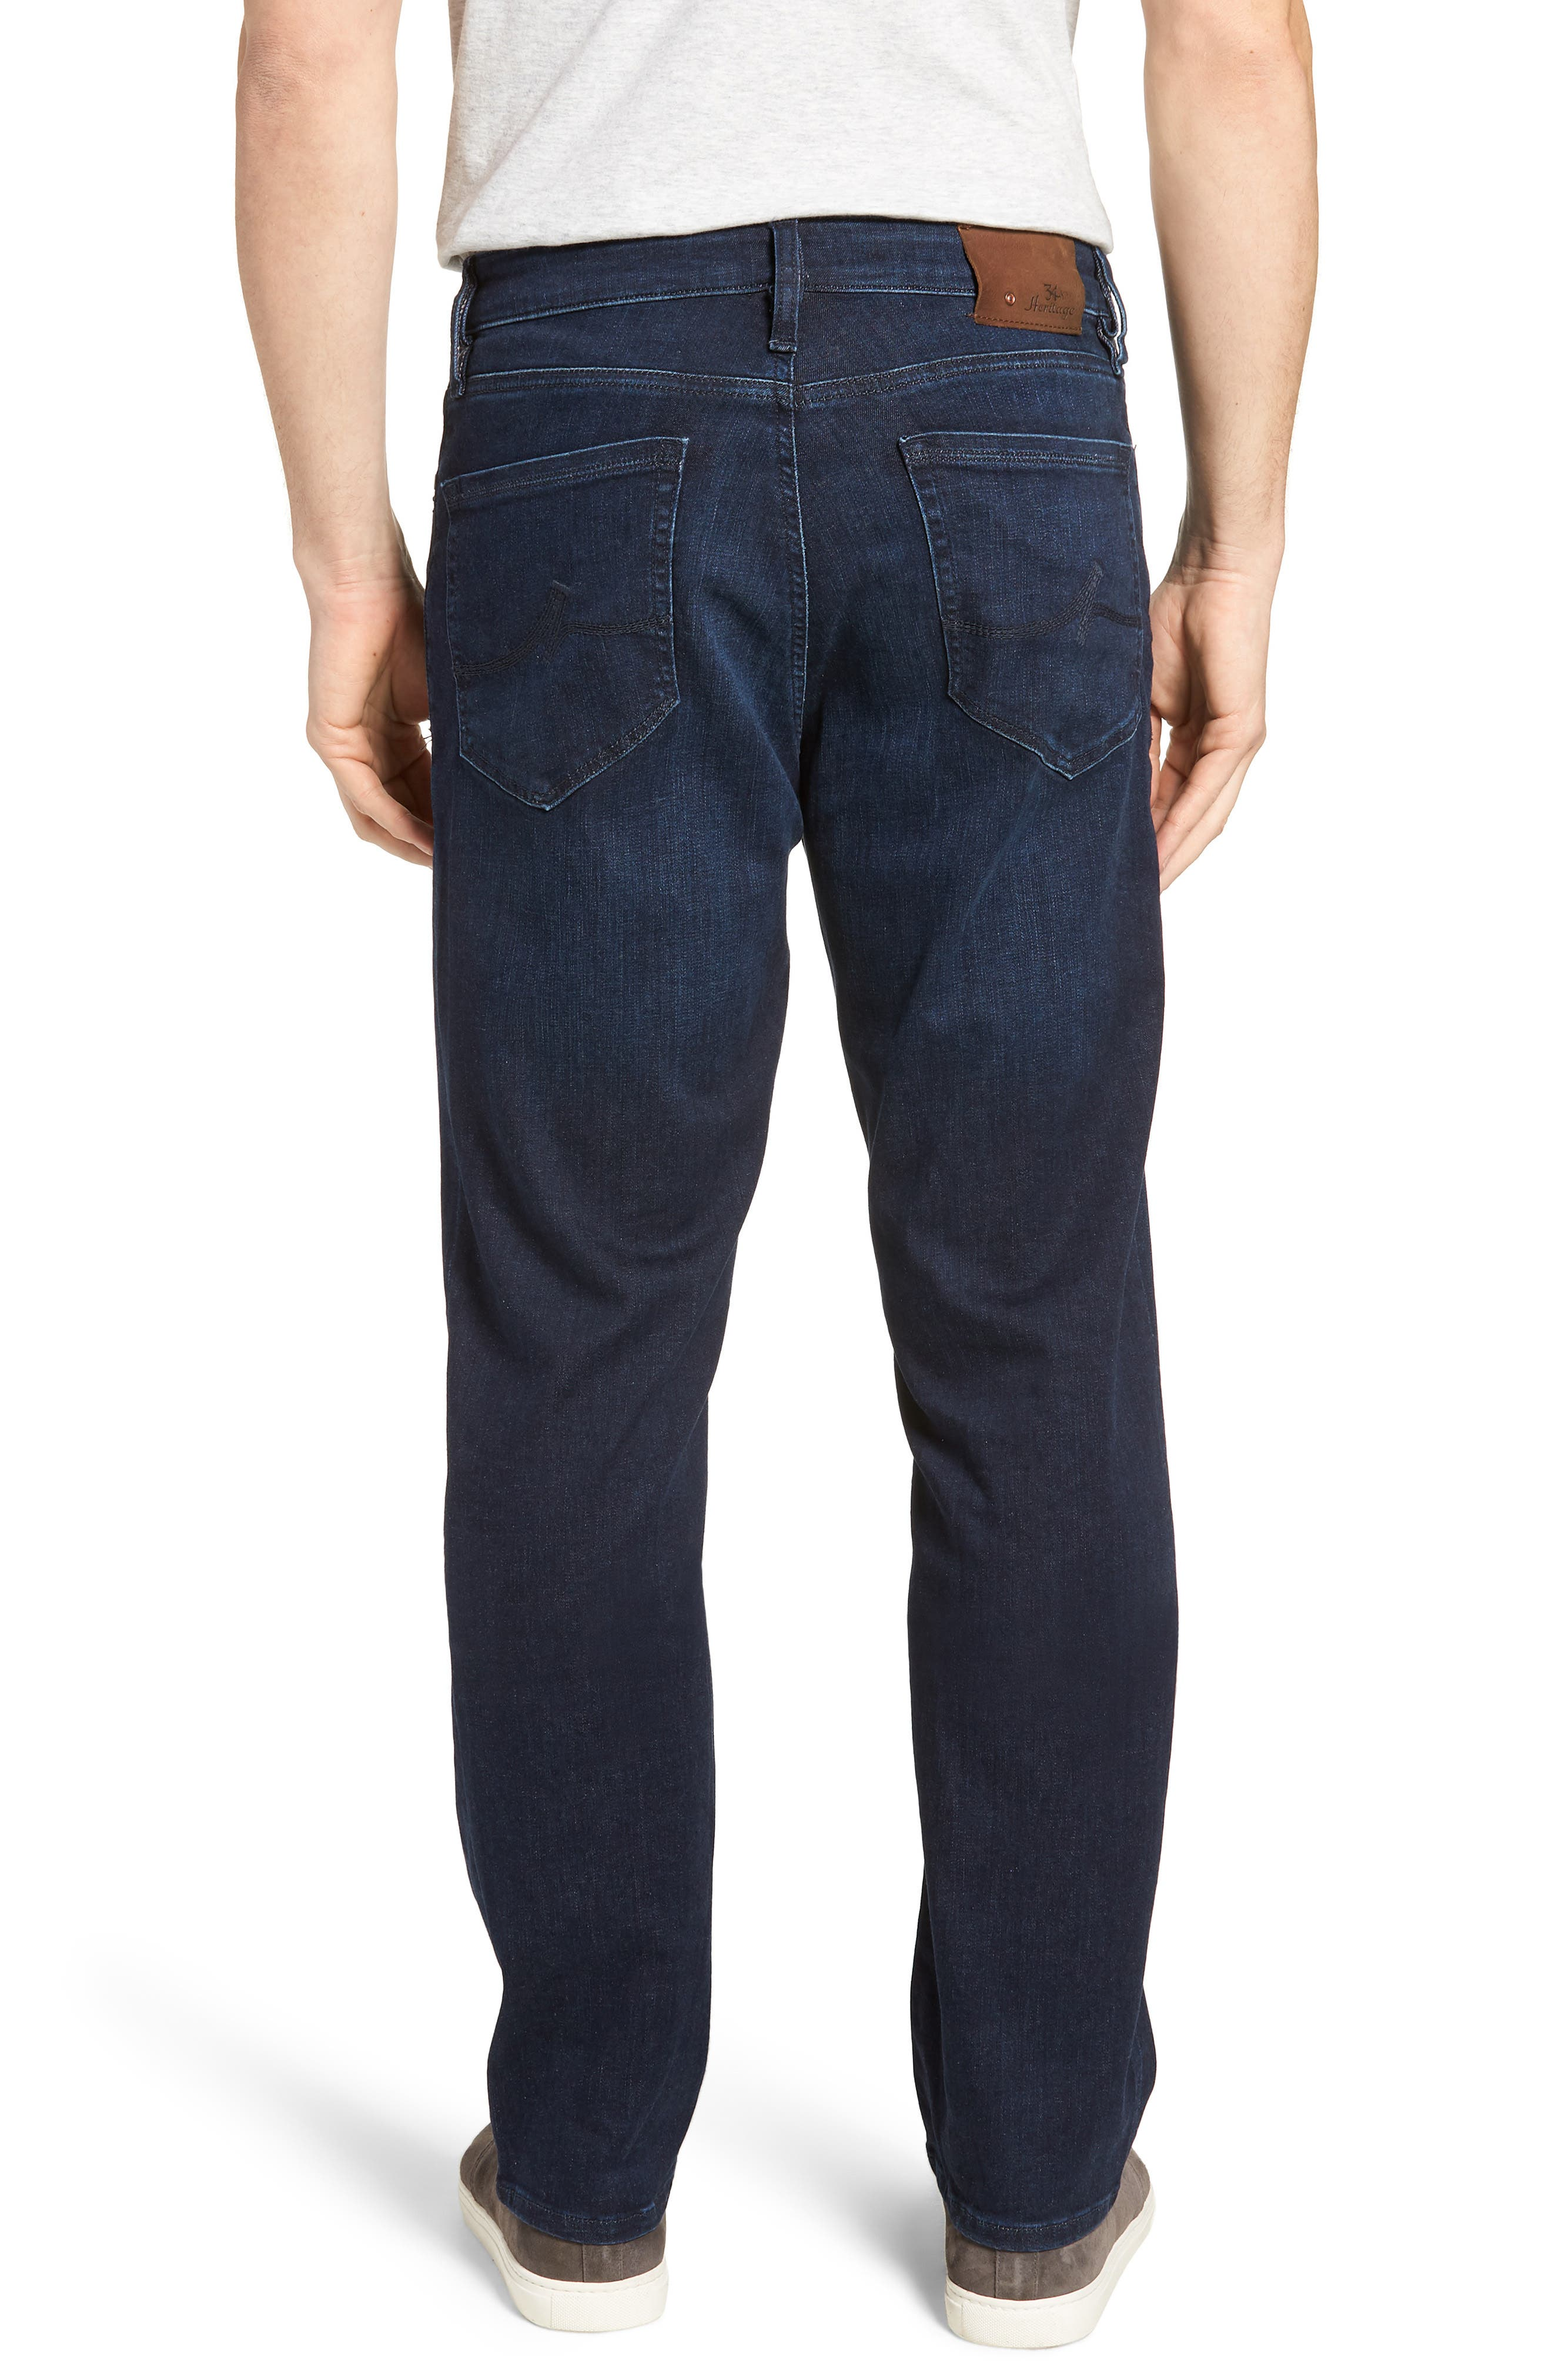 Charisma Relaxed Fit Jeans,                             Alternate thumbnail 2, color,                             Dark Milan